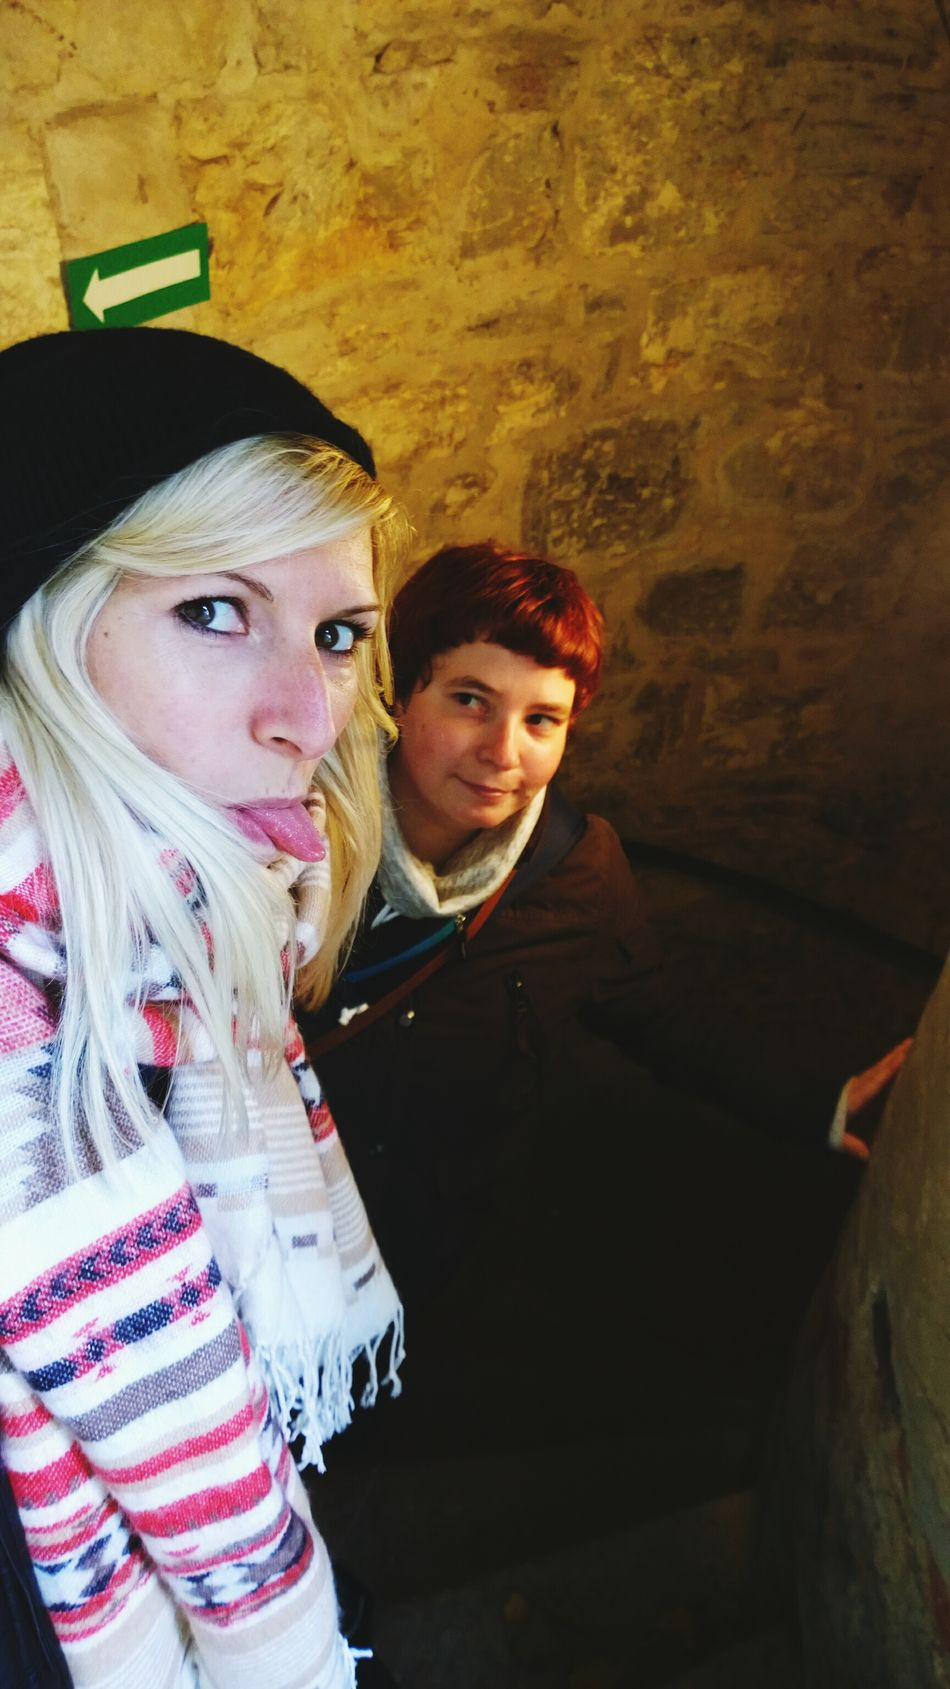 I Love Prague Me And My Sister That's Me Cheese! Ilovemysister Taking Photos The Human Condition